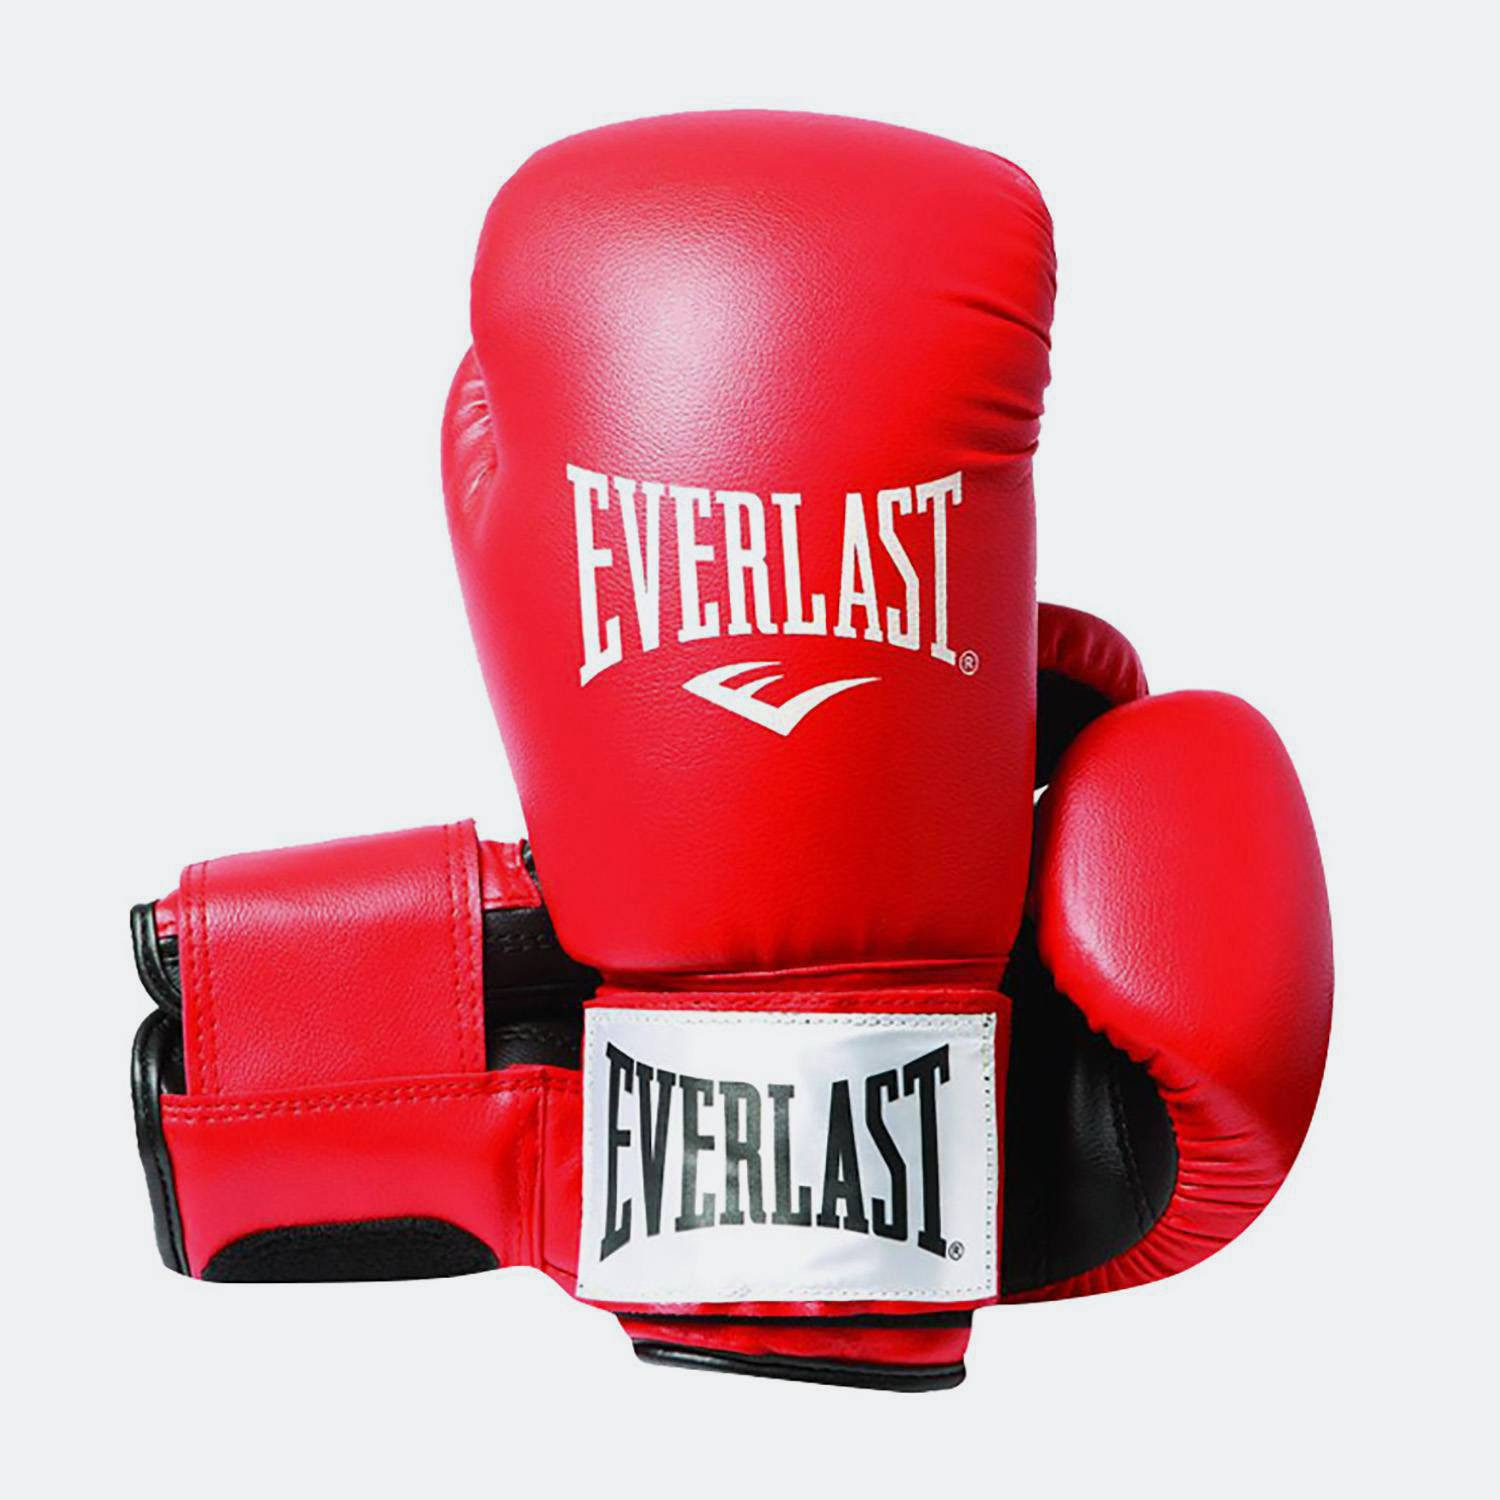 Everlast Pvc Boxing Gloves